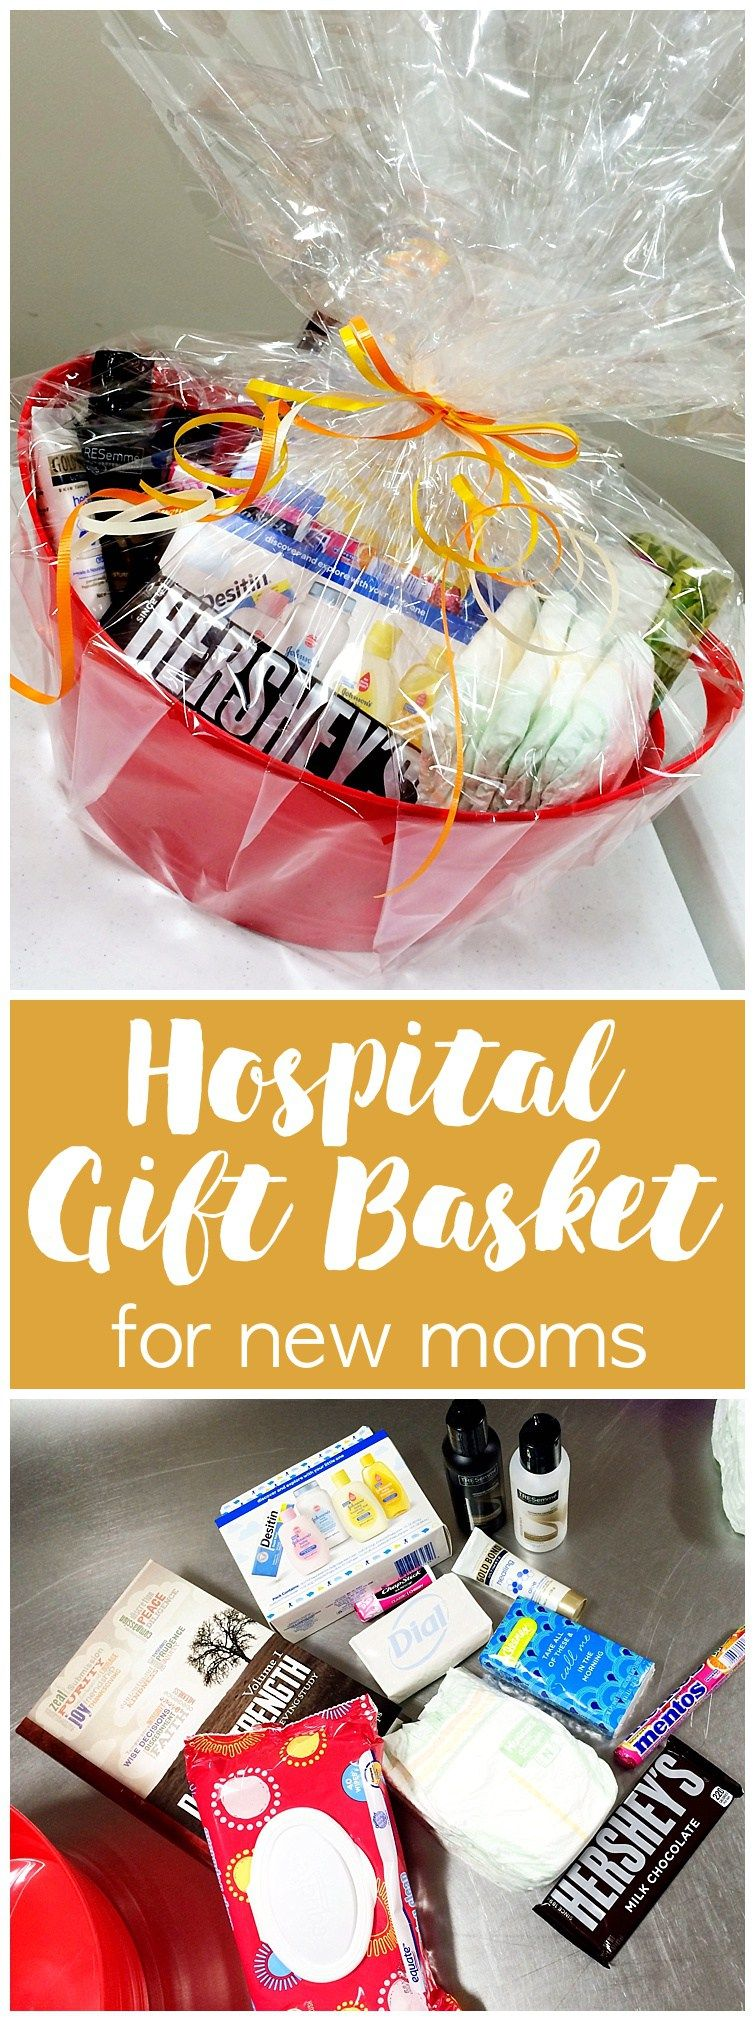 Hospital Gift Basket... for a new mom | Great Gift Ideas | Pinterest ...